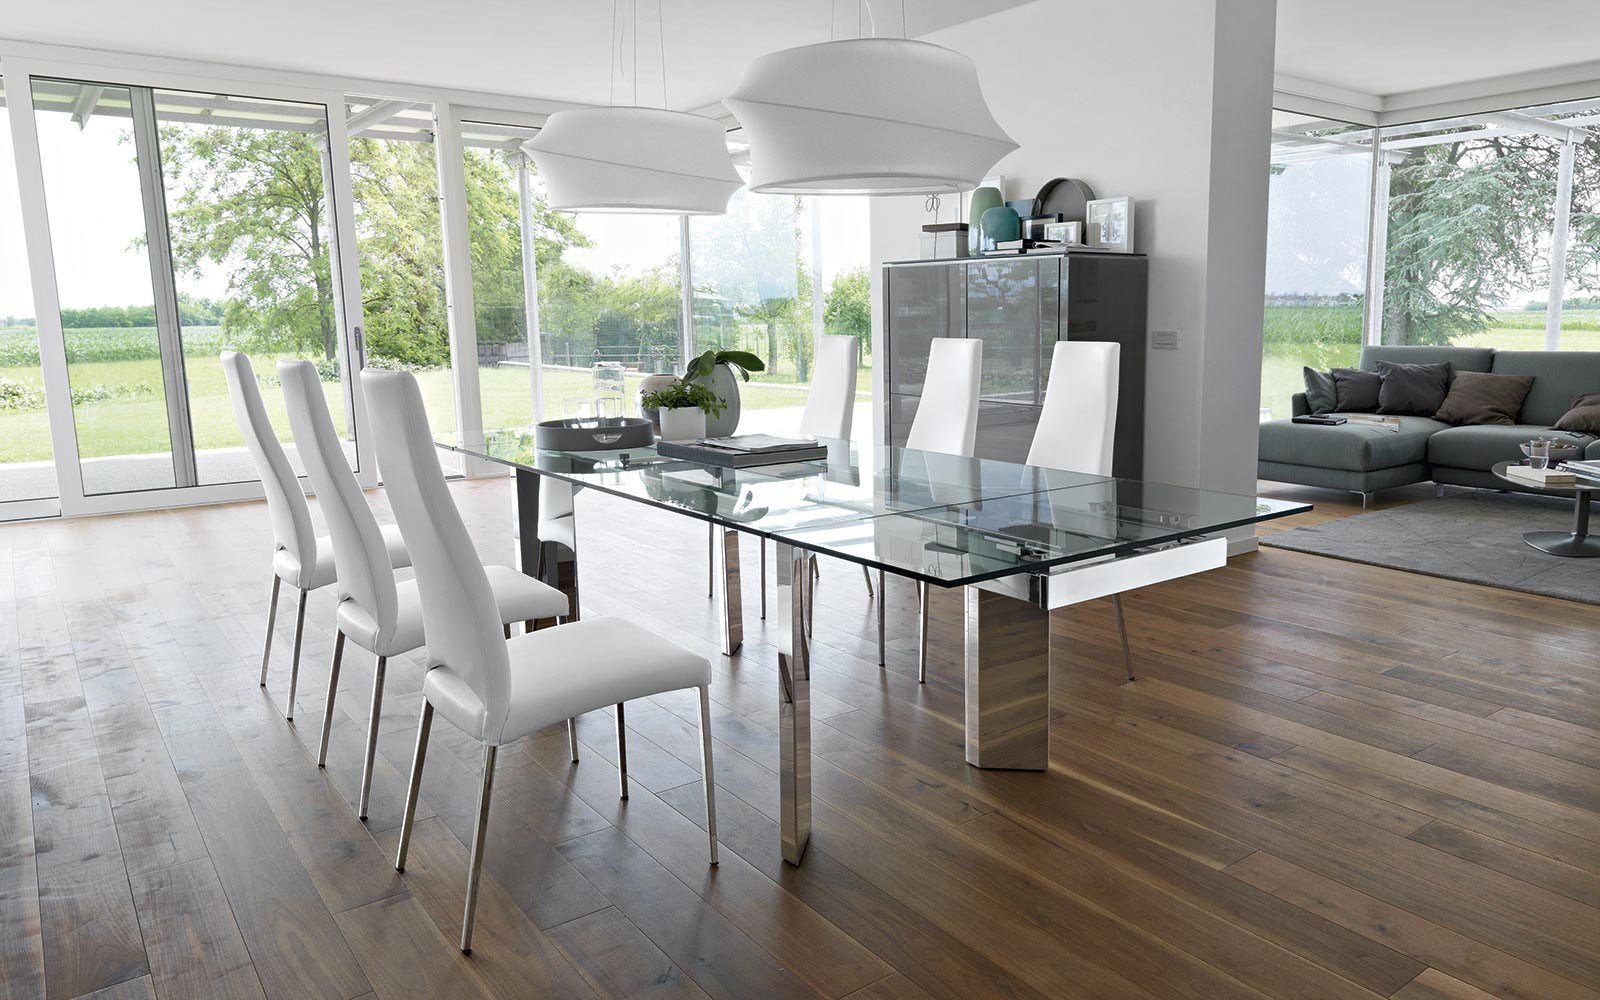 Tower tavolo in vetro by calligaris for Tavolo calligaris vetro temperato